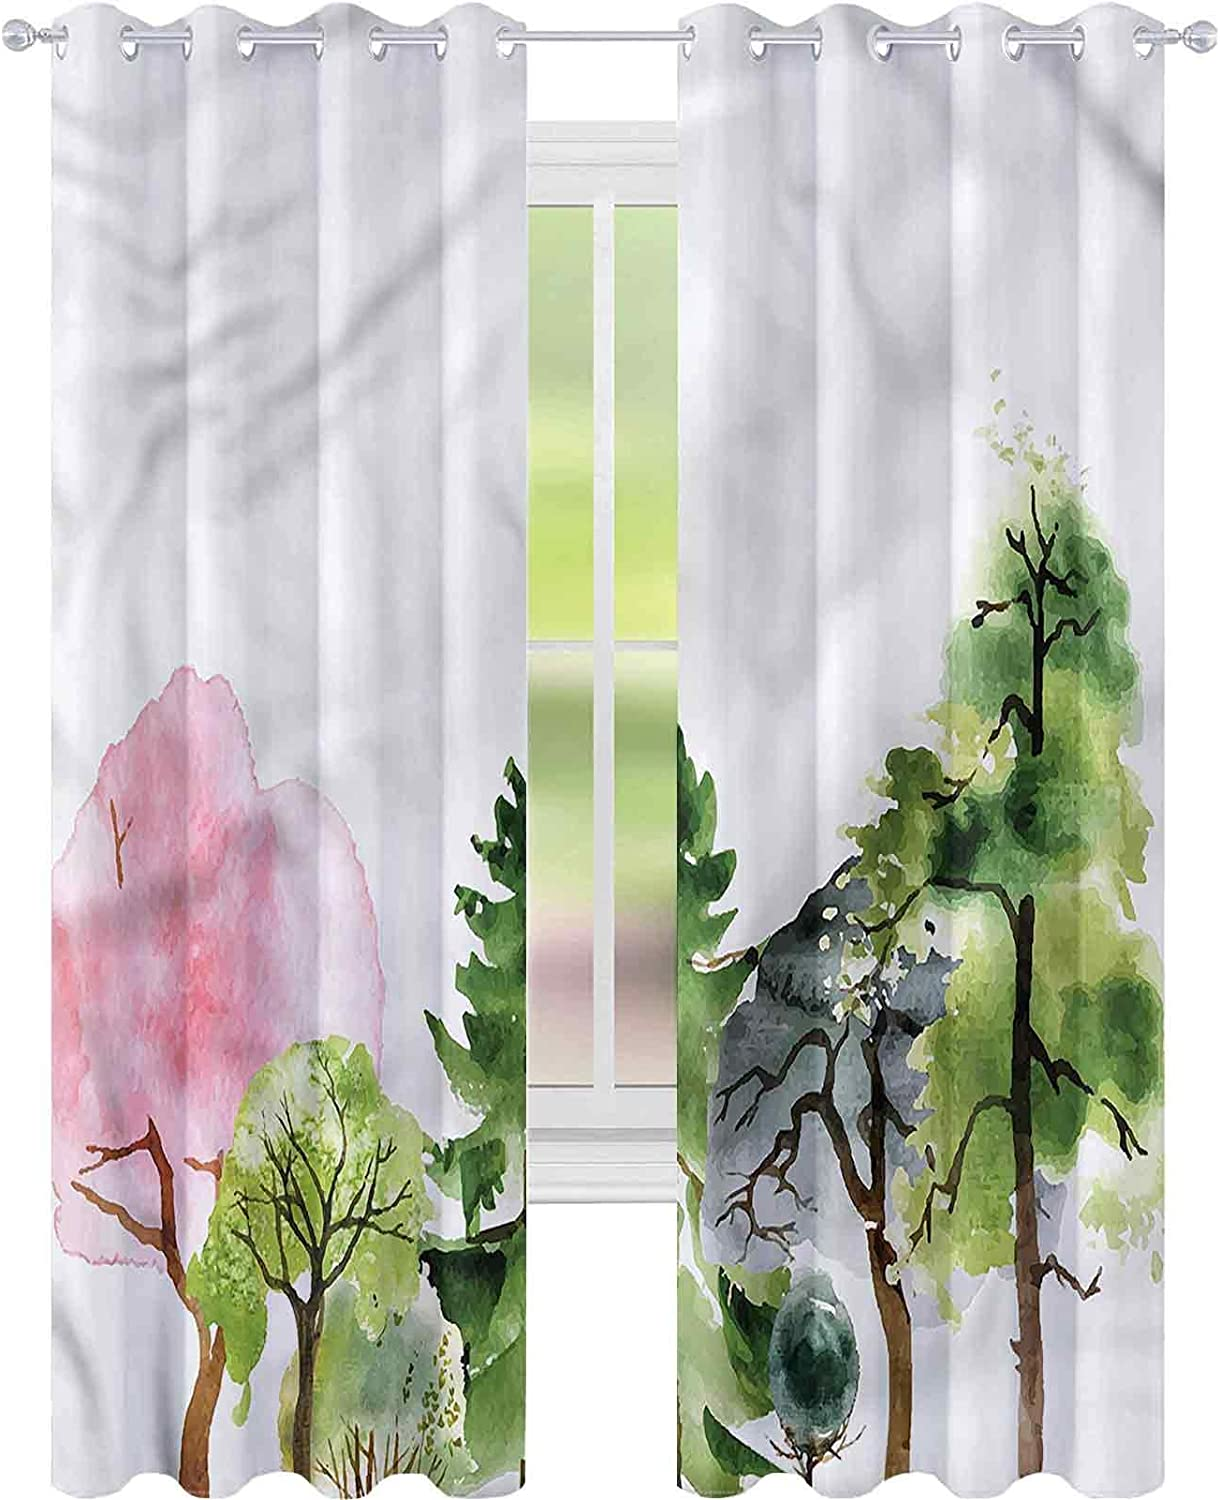 Window Curtain Drape Forest Colorful Woodland W42 Superior x L Willow Oak Ranking TOP19